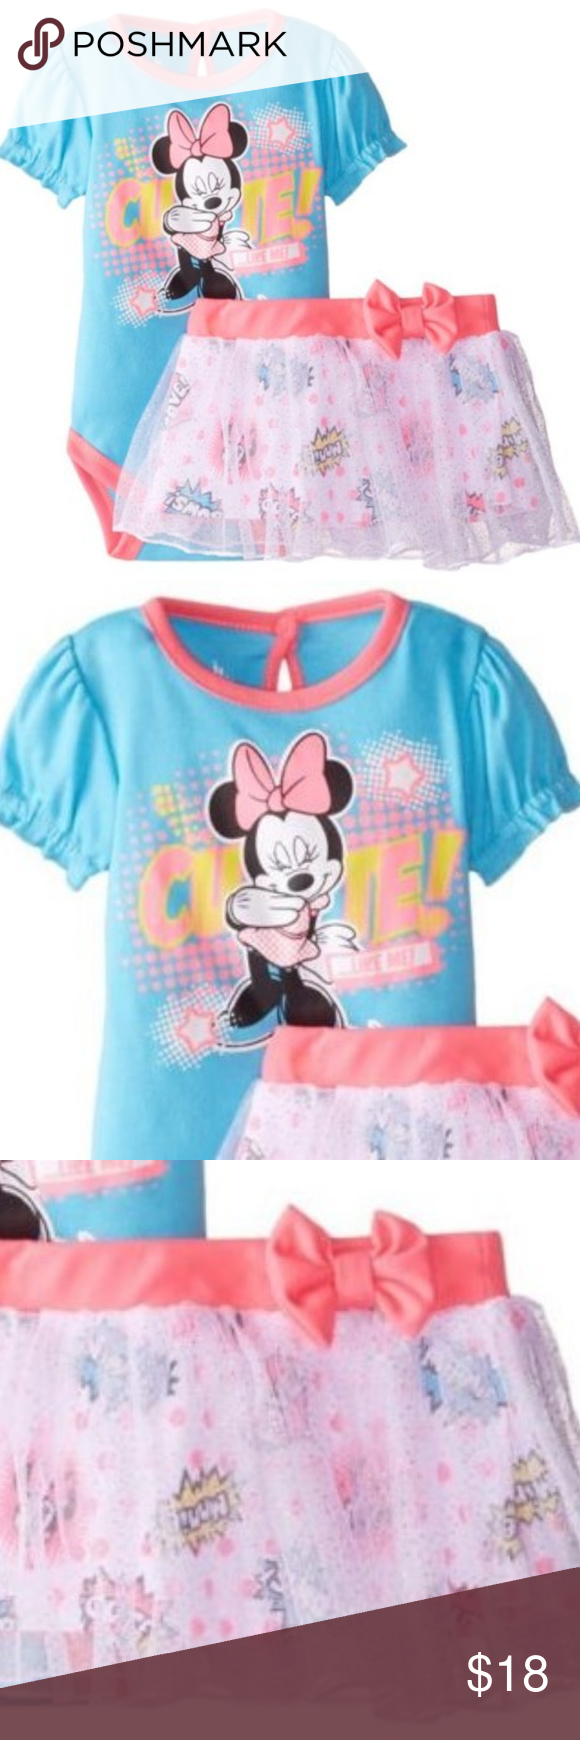 9c33e77f1 Disney Minnie Baby Girl Bodysuit Skirt Set Outfit NWT in 2019